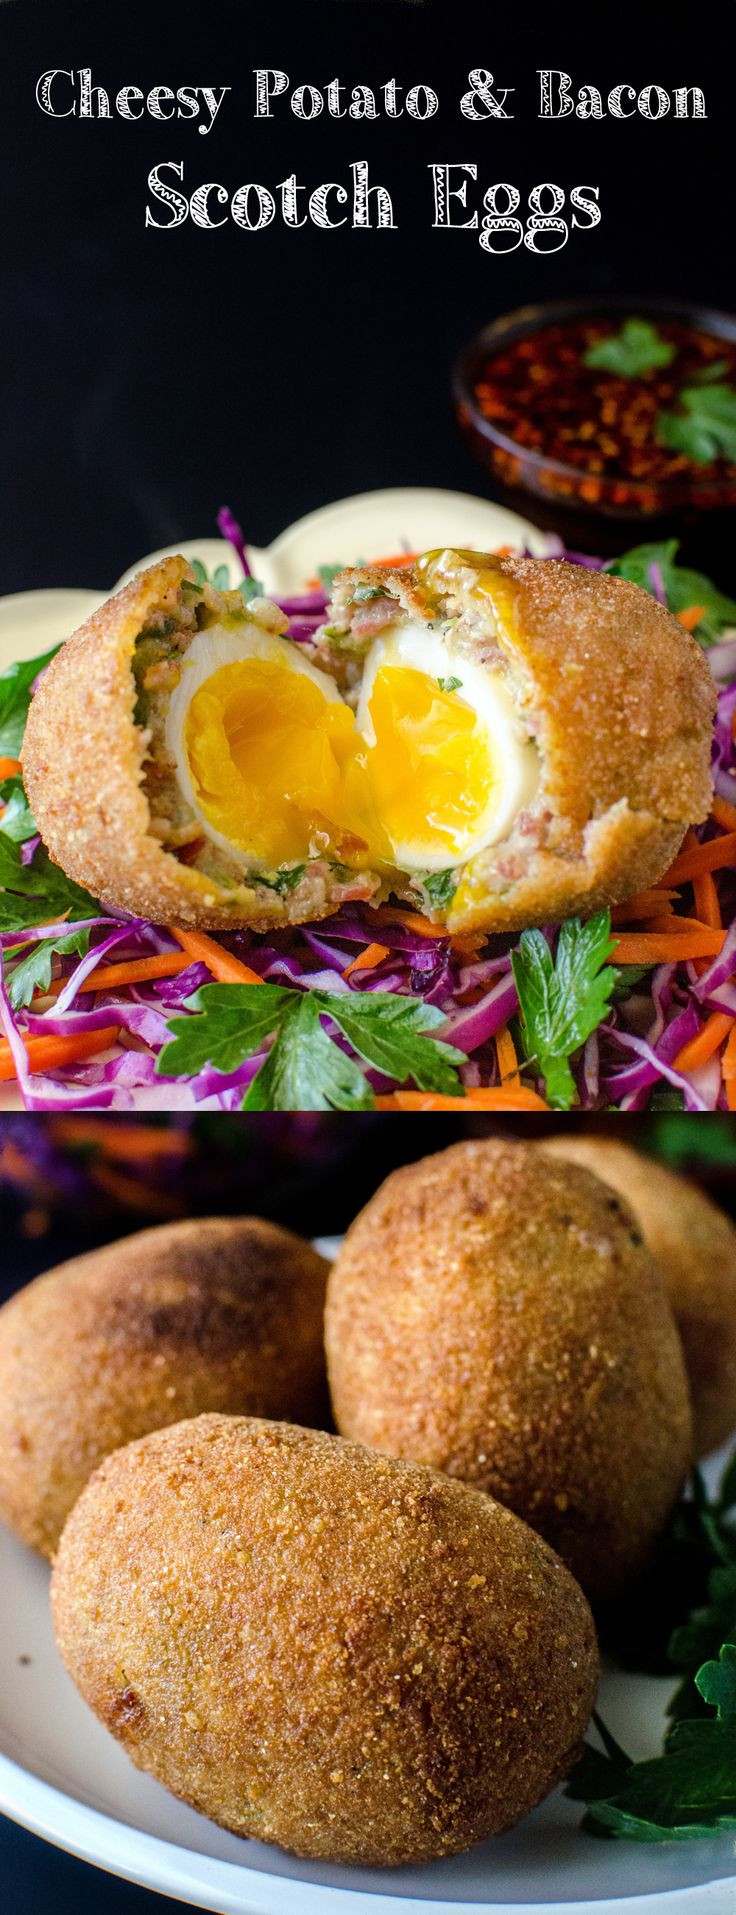 Cheesy Potato & Bacon Scotch Eggs. Make your Scotch eggs extra special ...